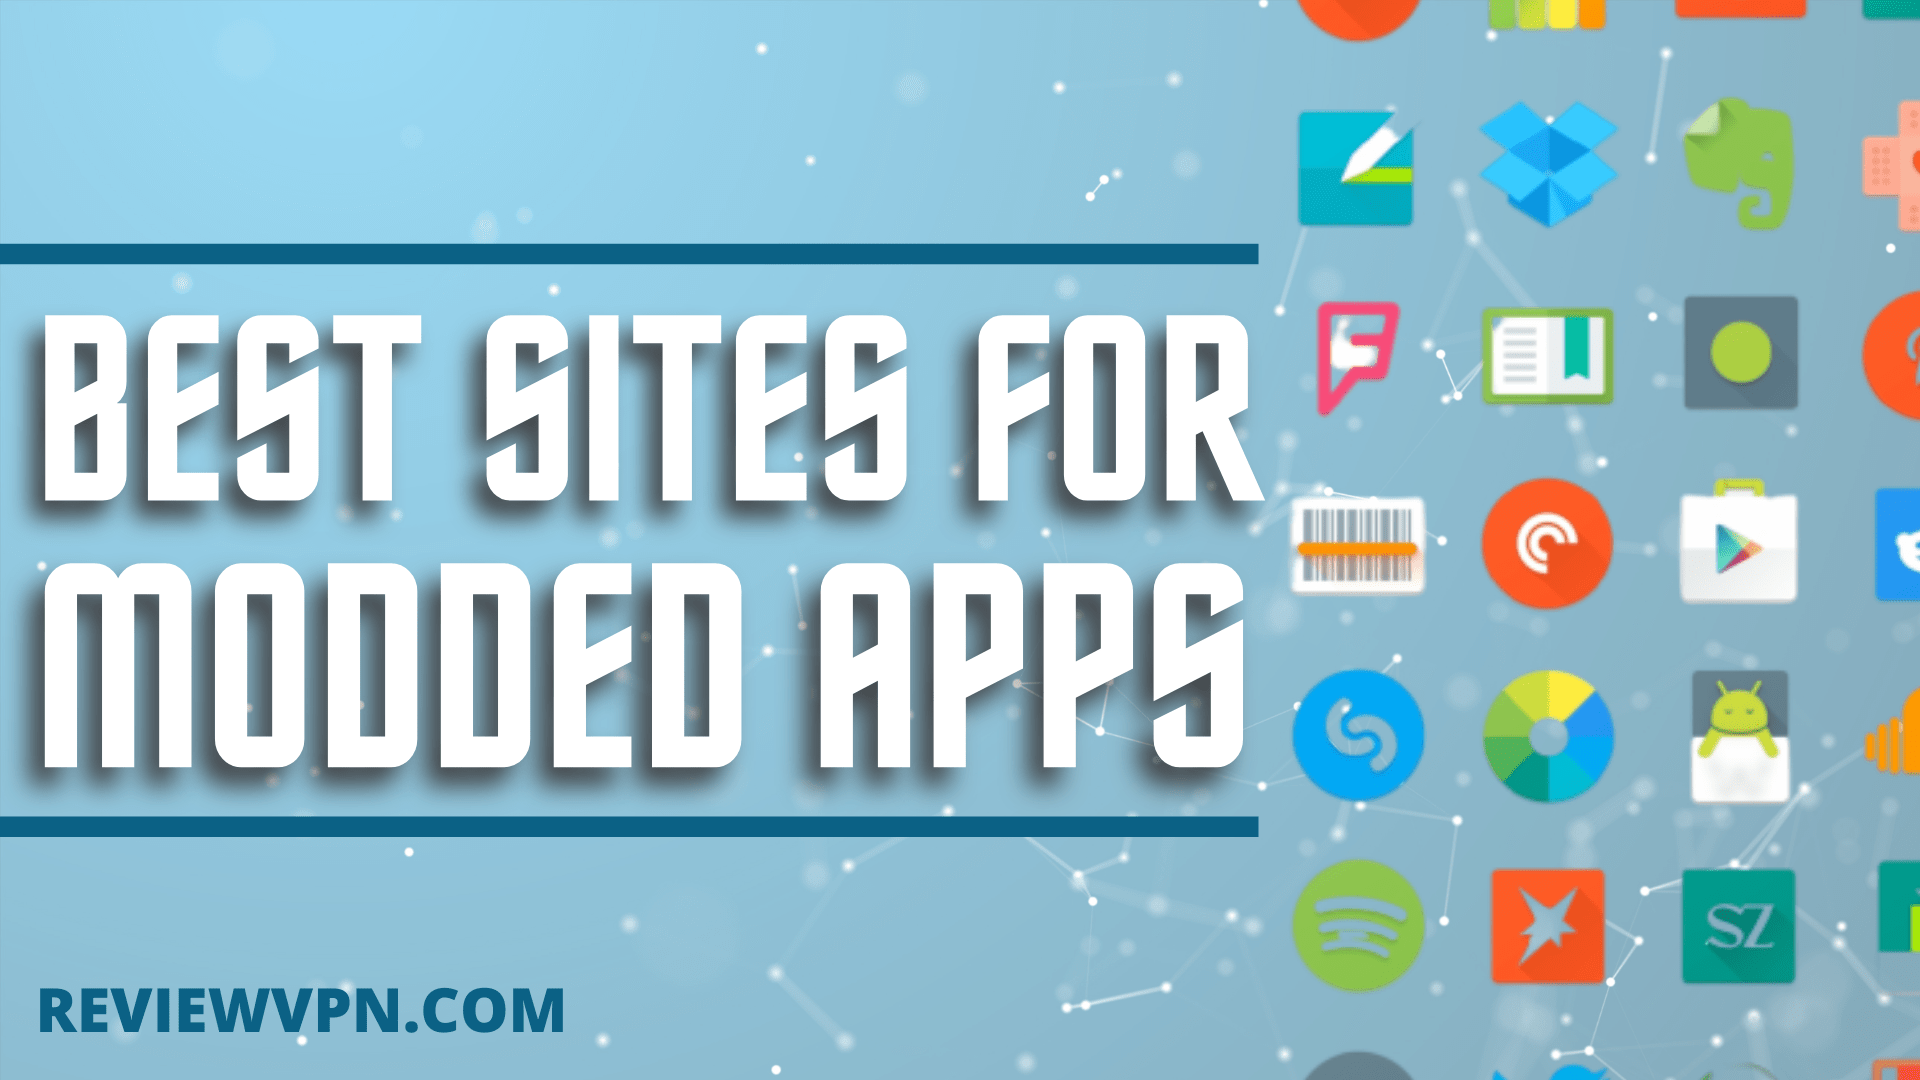 Best Sites for Modded Apps (APK Files) in 2021